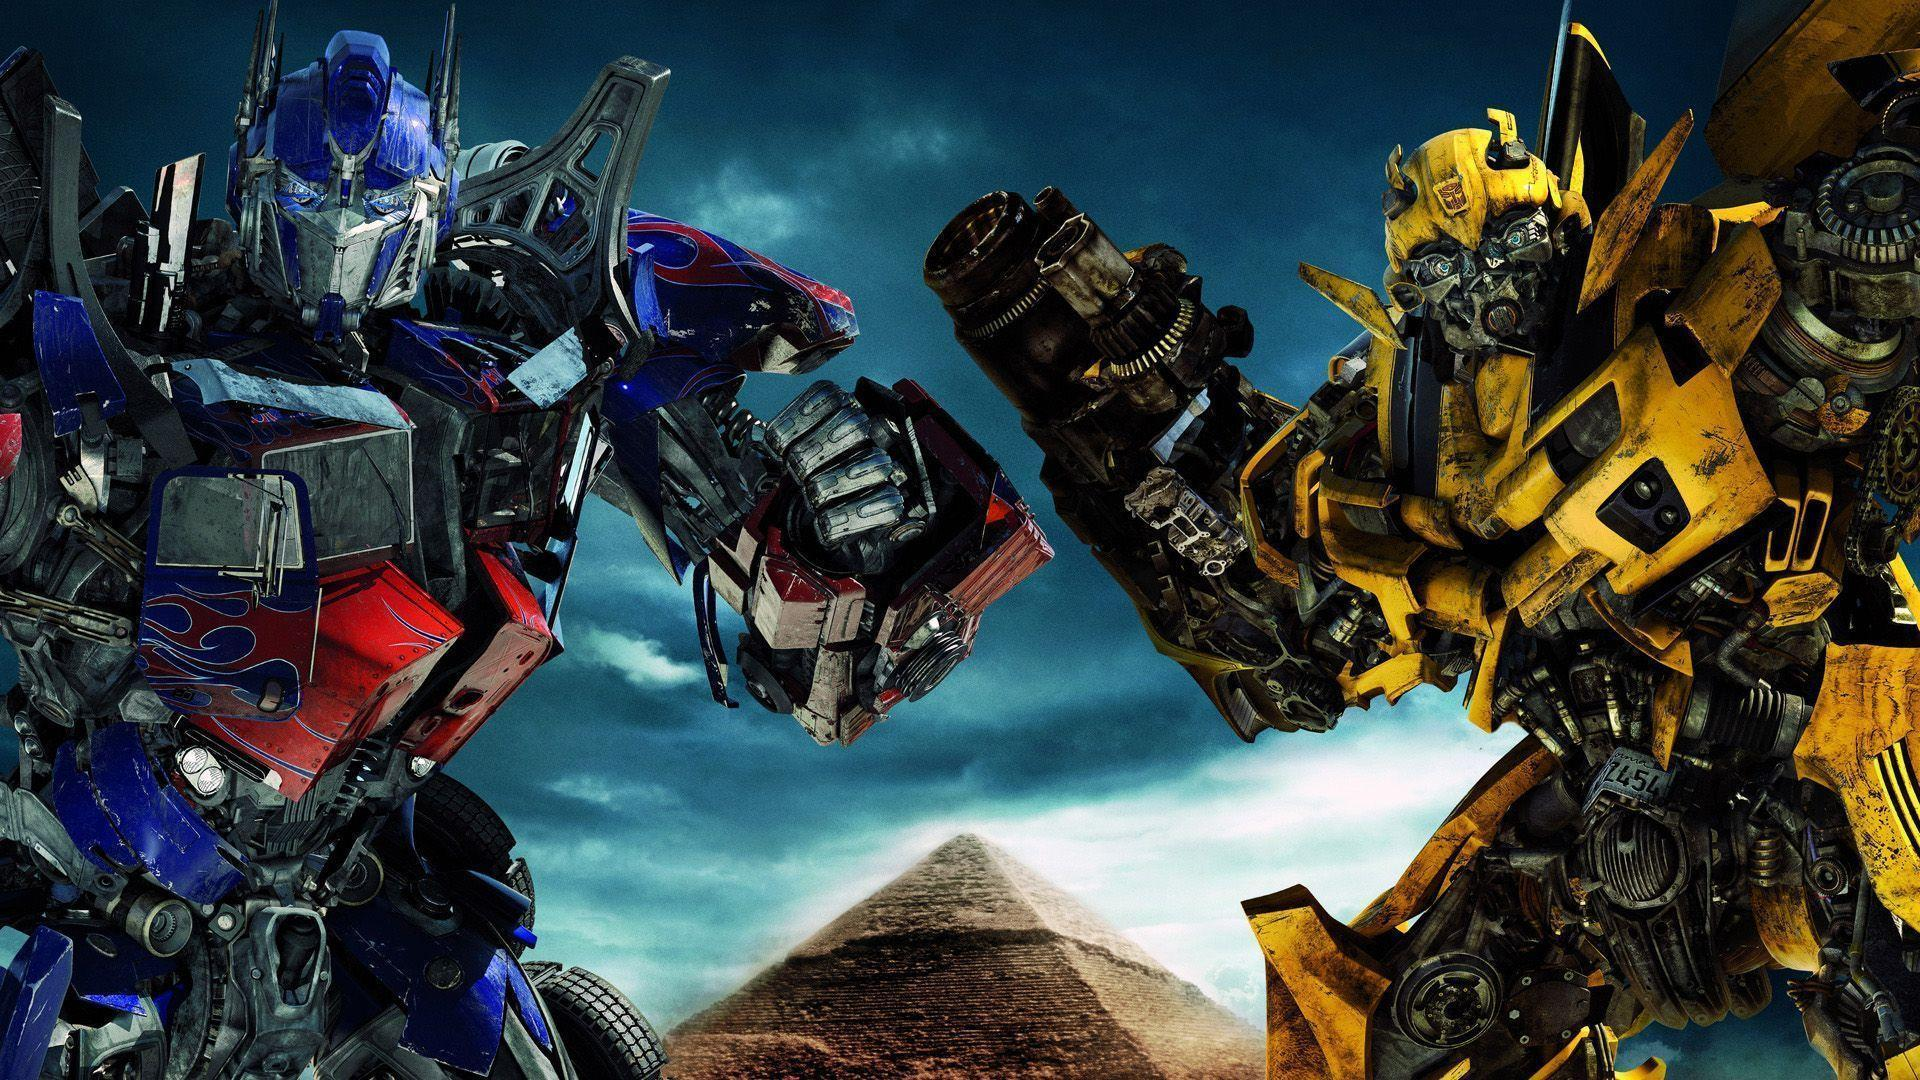 optimus prime wallpaper download - photo #14